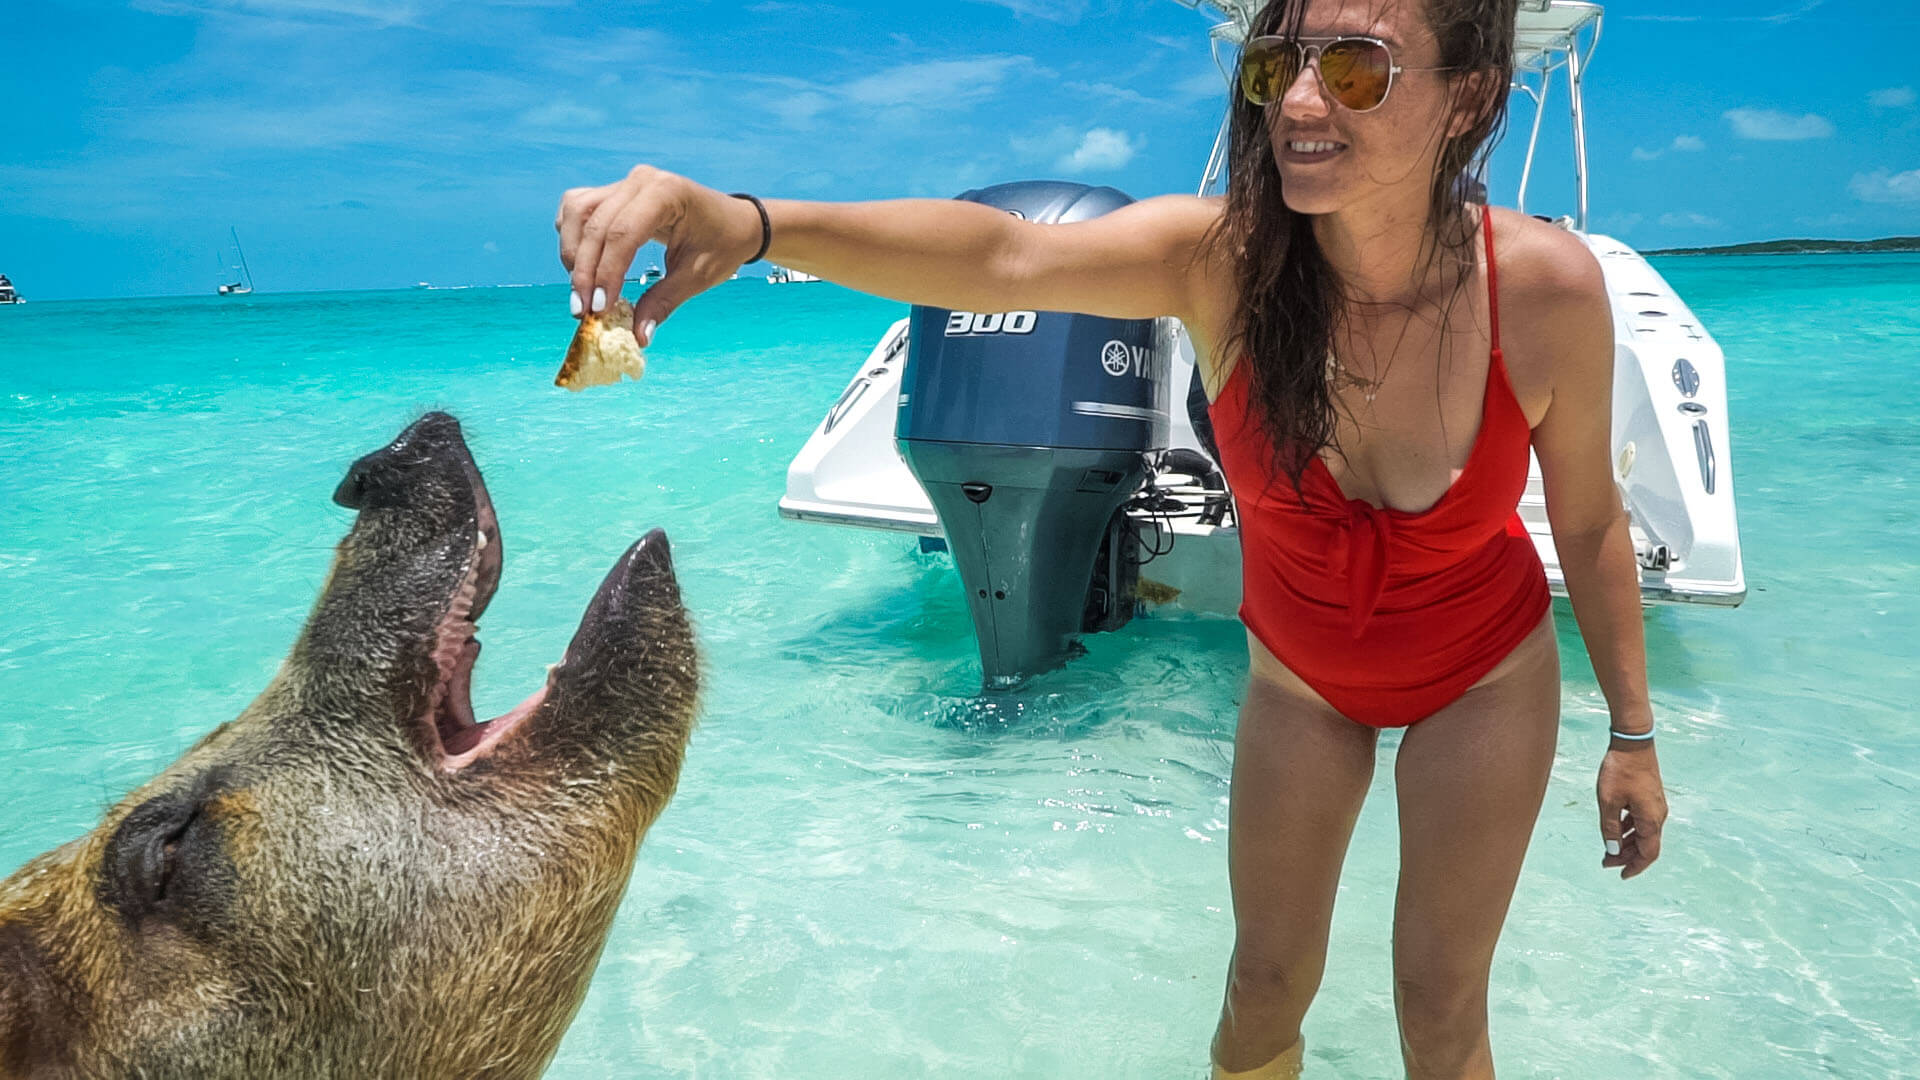 Kristin of Vacation Couple in a red bathing suit feeding an adult pig on Pig Beach in the Bahamas which is one of the best things to do in the bahamas